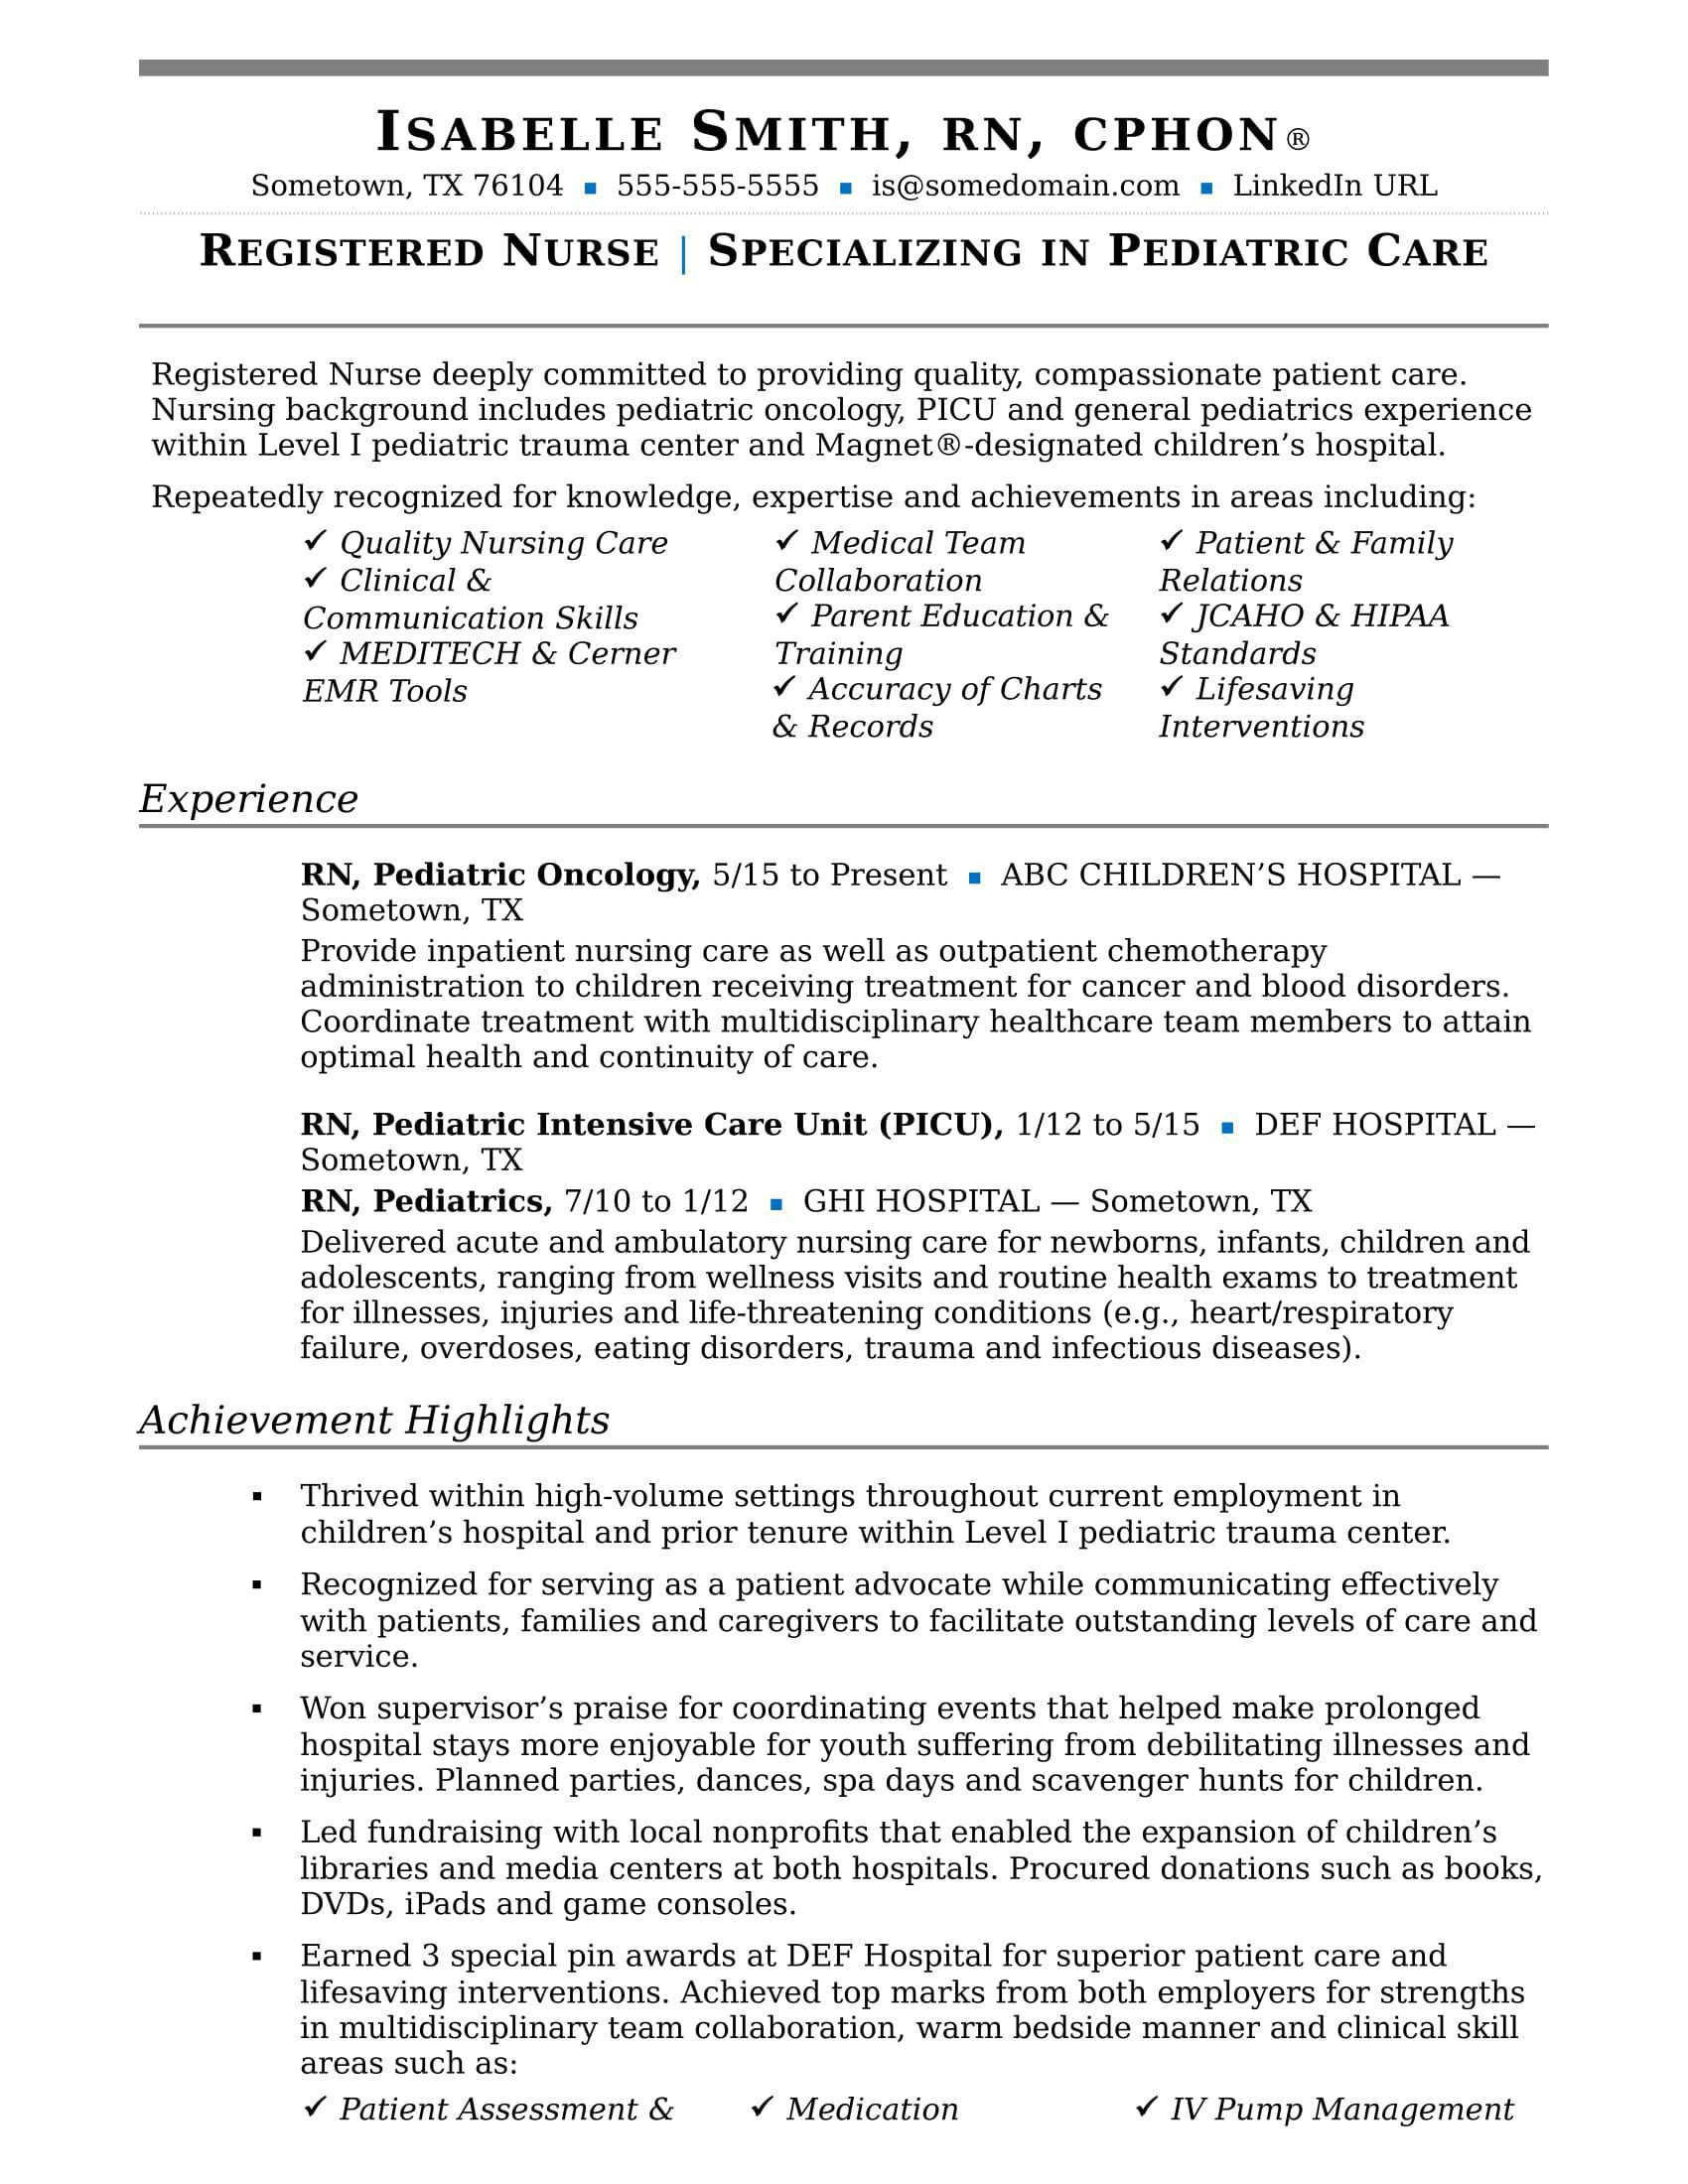 004 Remarkable New Rn Resume Template Picture Full